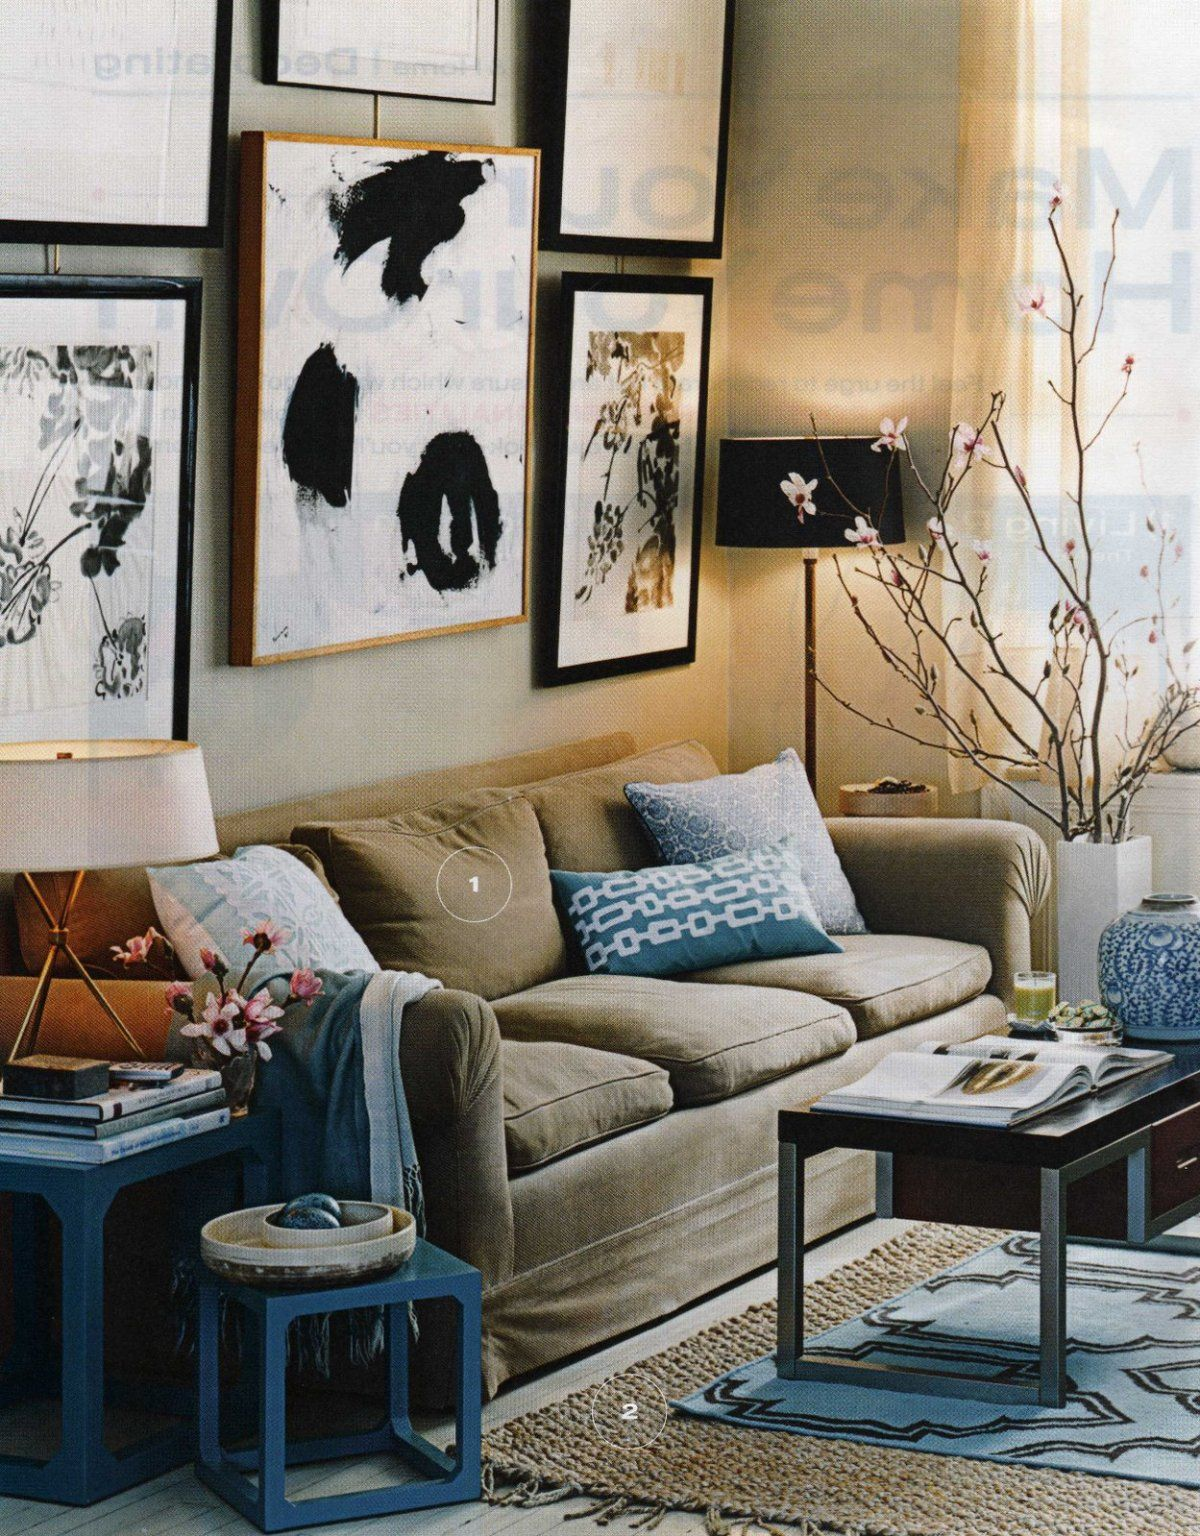 Living Room Small Ideas And Navy Blue With Brown Velvet Sofa Black Coffee Table Unique Area Rug Navi Pouf Also